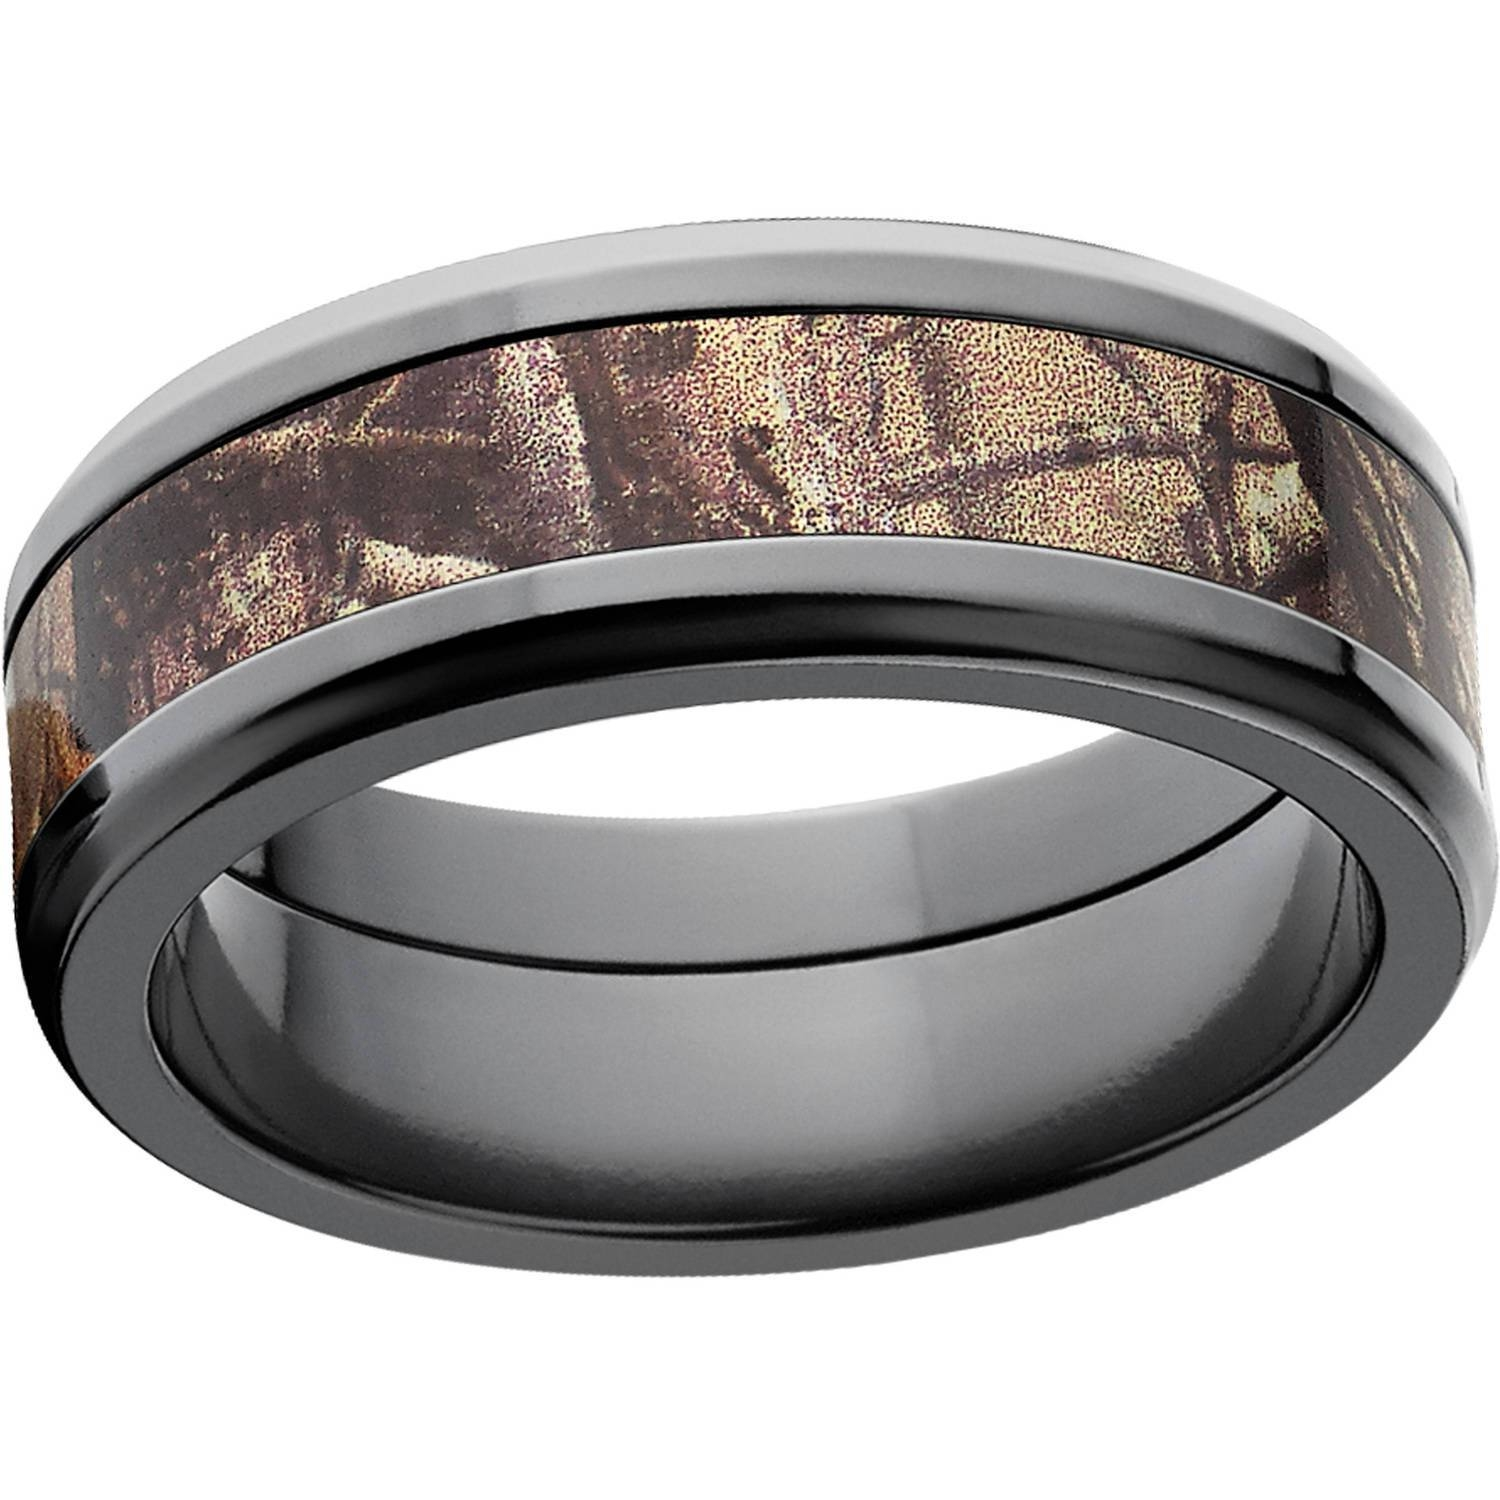 Realtree Ap Men's Camo 8Mm Black Zirconium Wedding Band – Walmart Intended For Men's Hunting Wedding Bands (View 13 of 15)